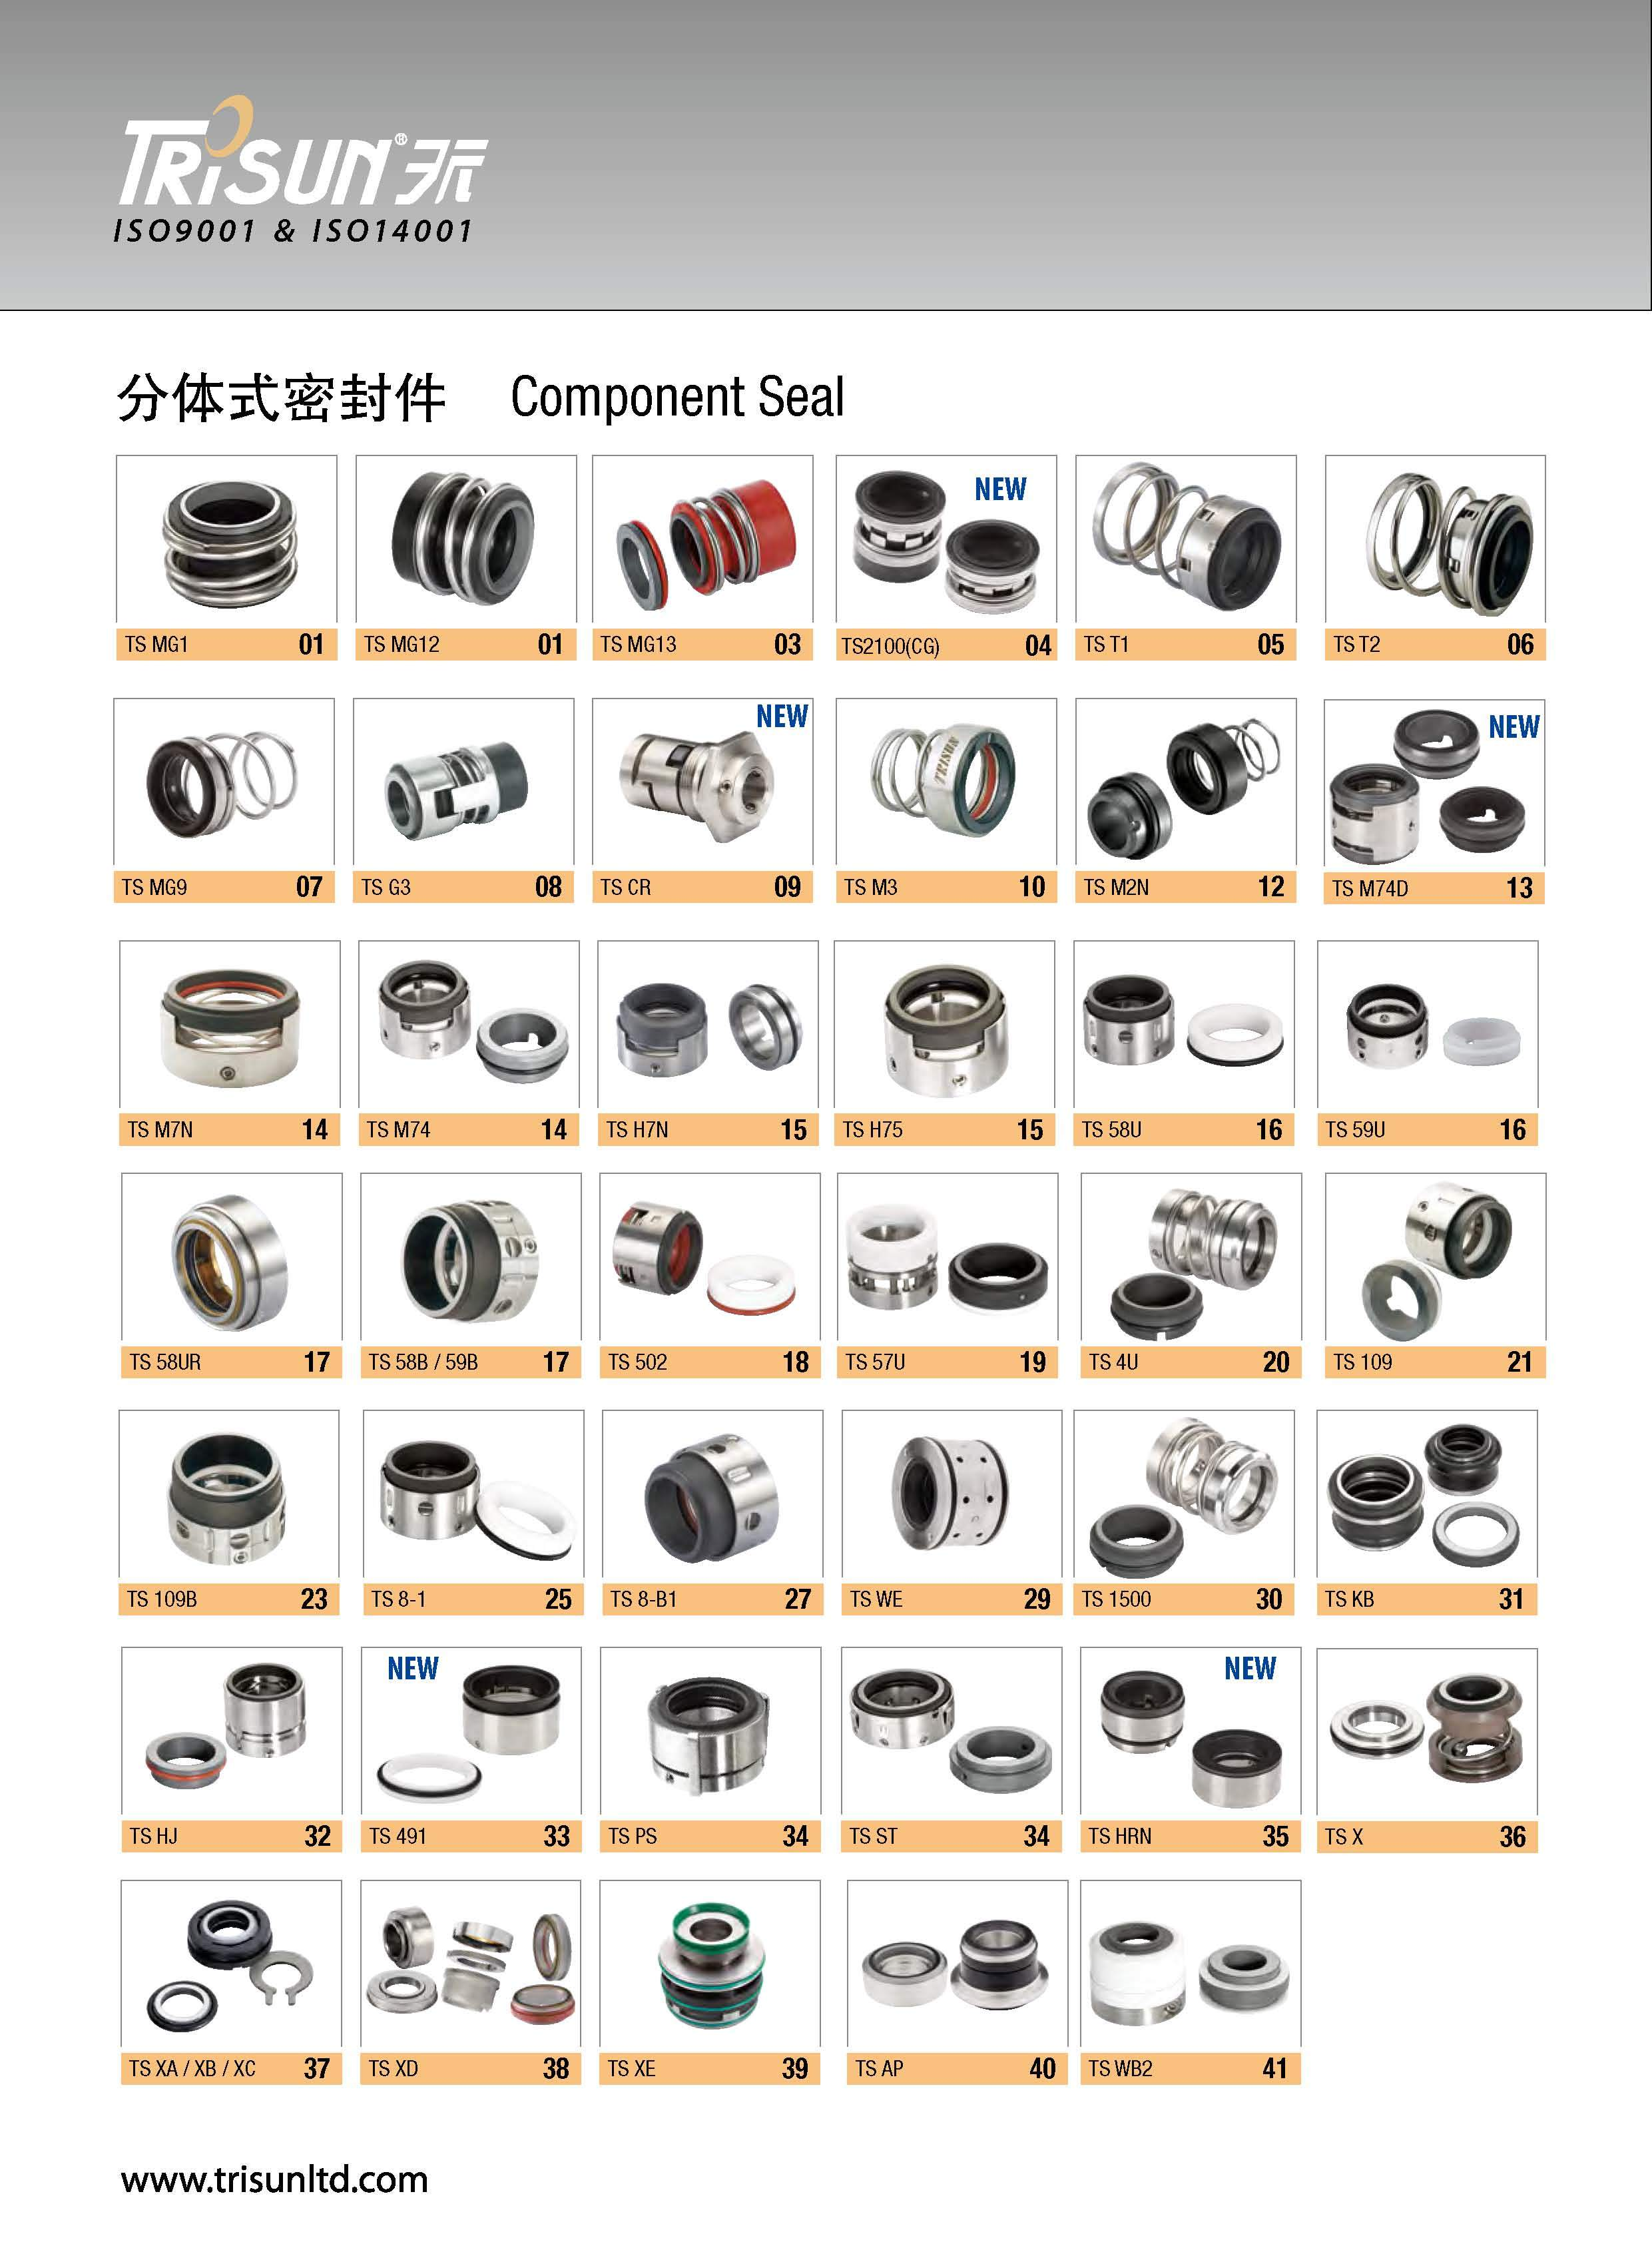 Flygt Pump Wiring Diagram Page 4 And Schematics Barnes 2640 Images Gallery China Mechanical Seal Ts Xc Photos Pictures Made